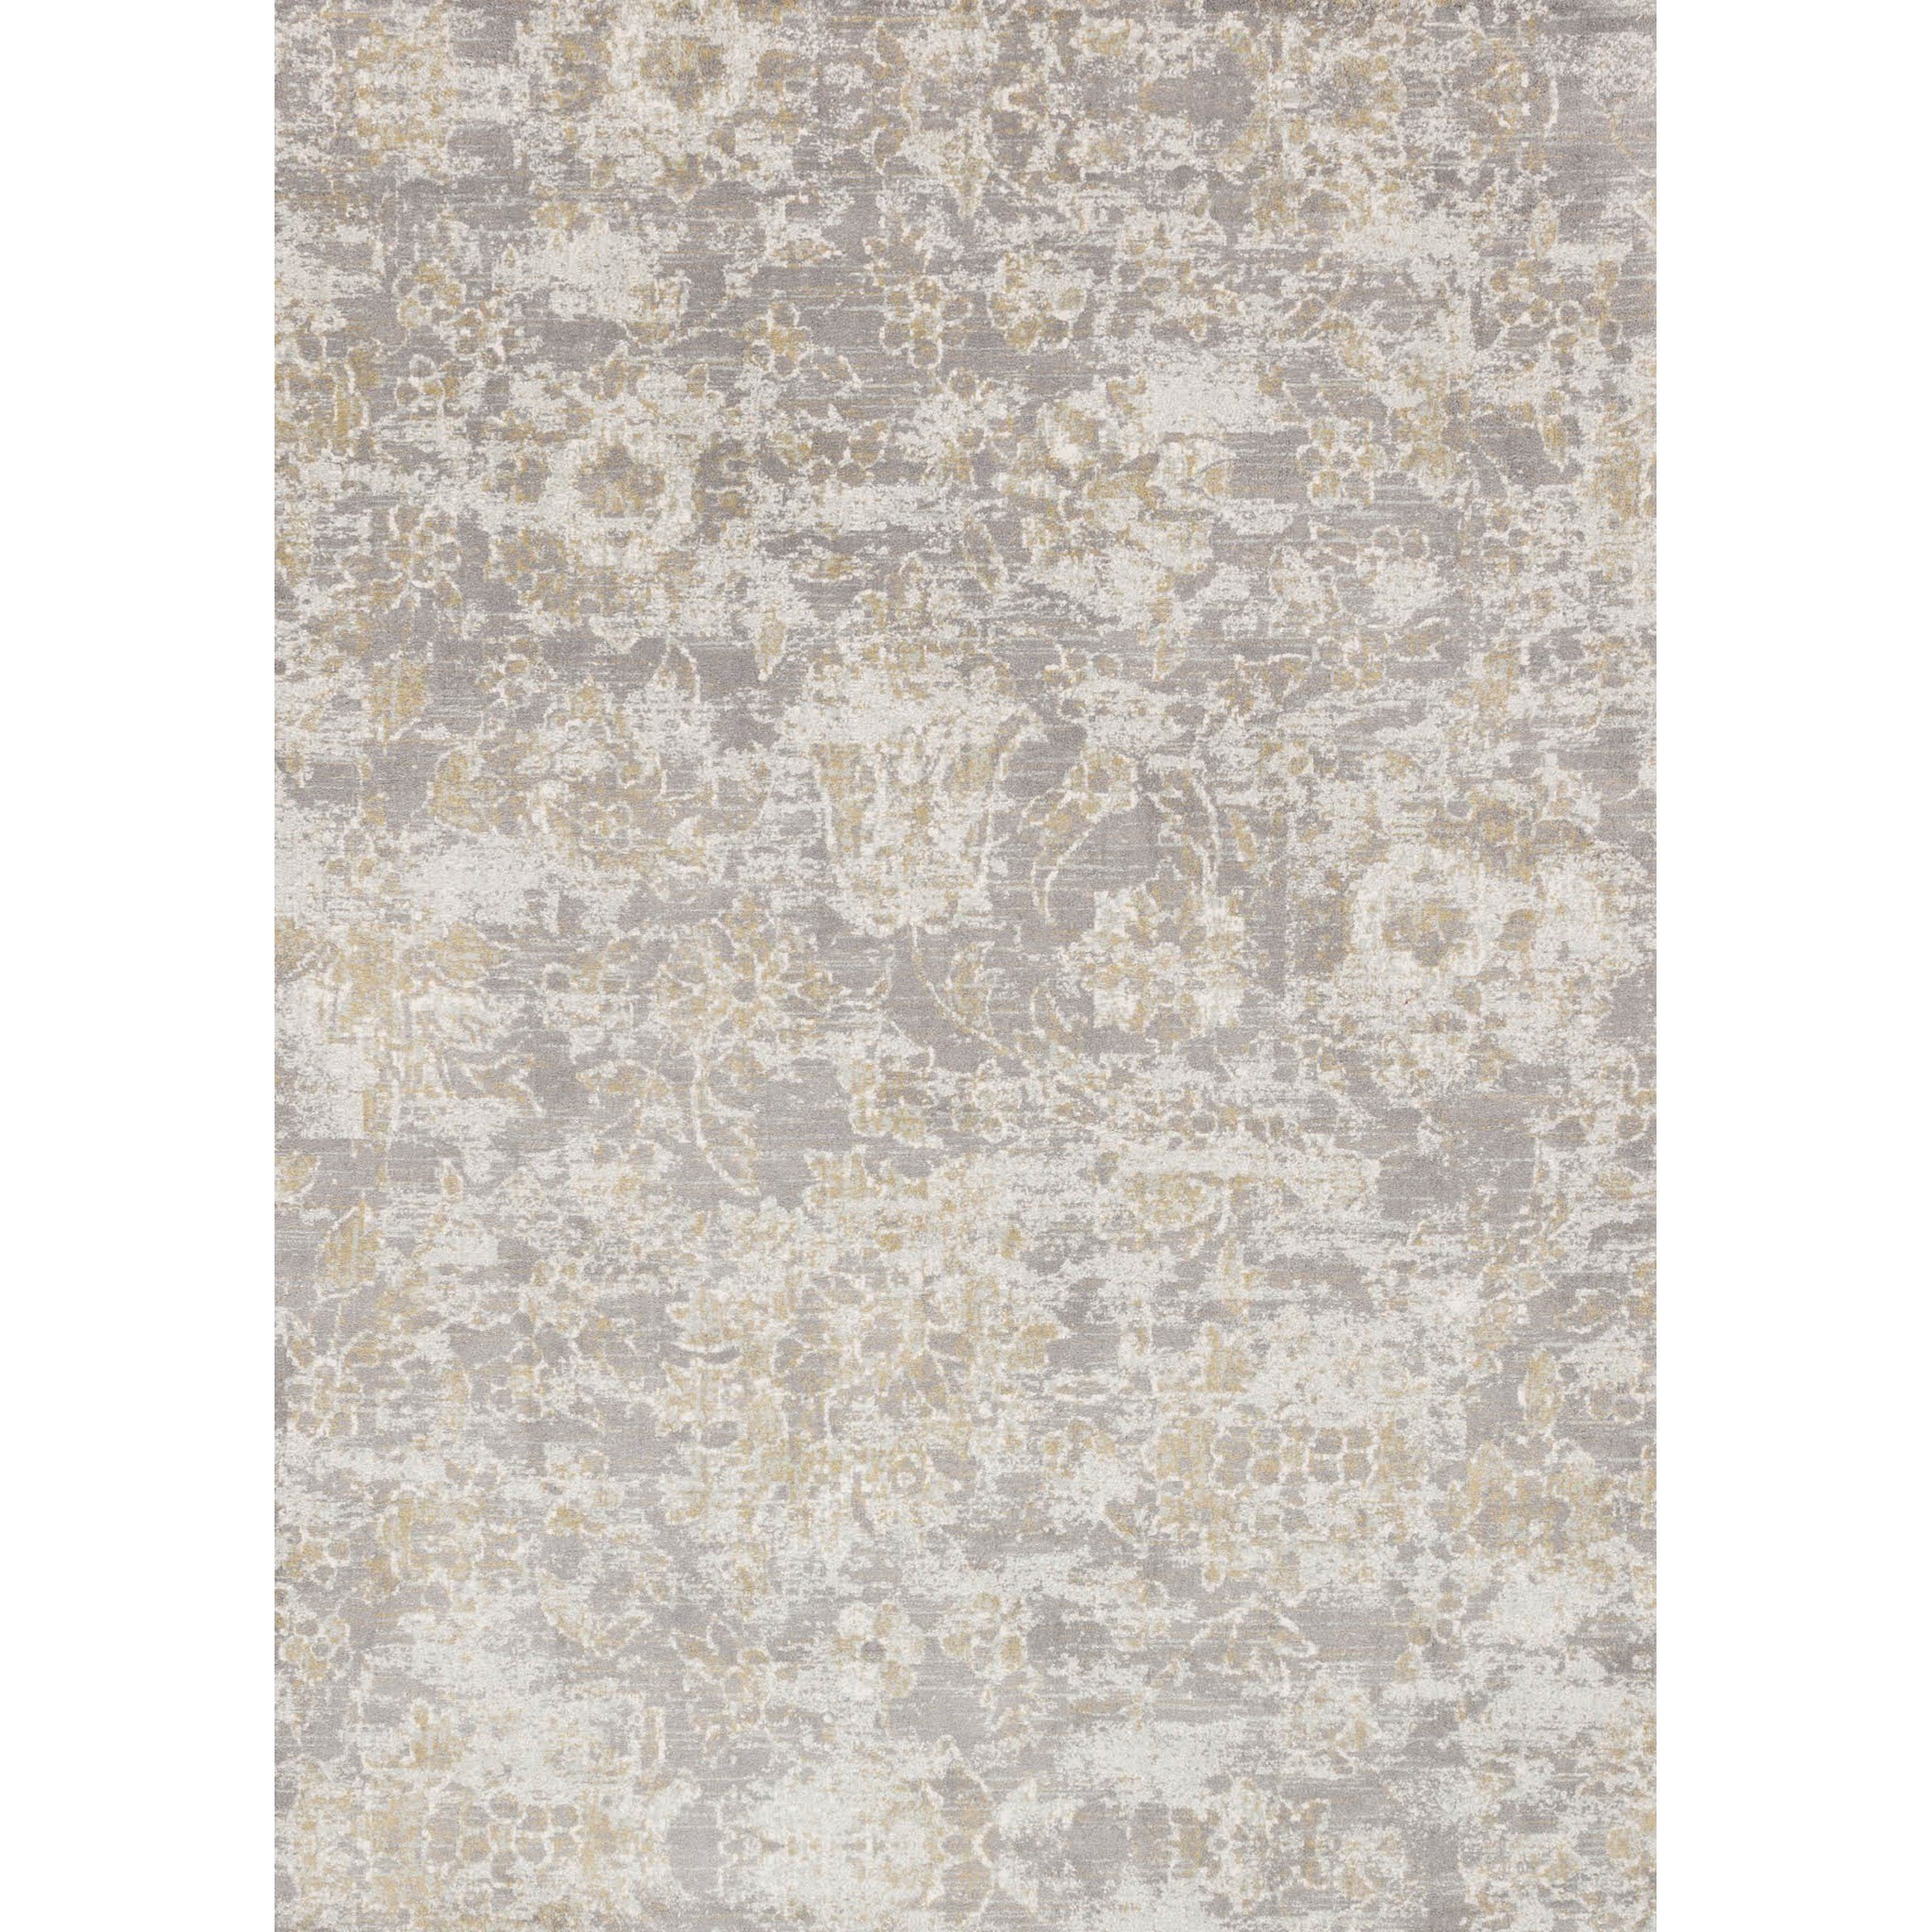 "Torrance 5'-0"" X 7'-6"" Rug by Loloi Rugs at Darvin Furniture"